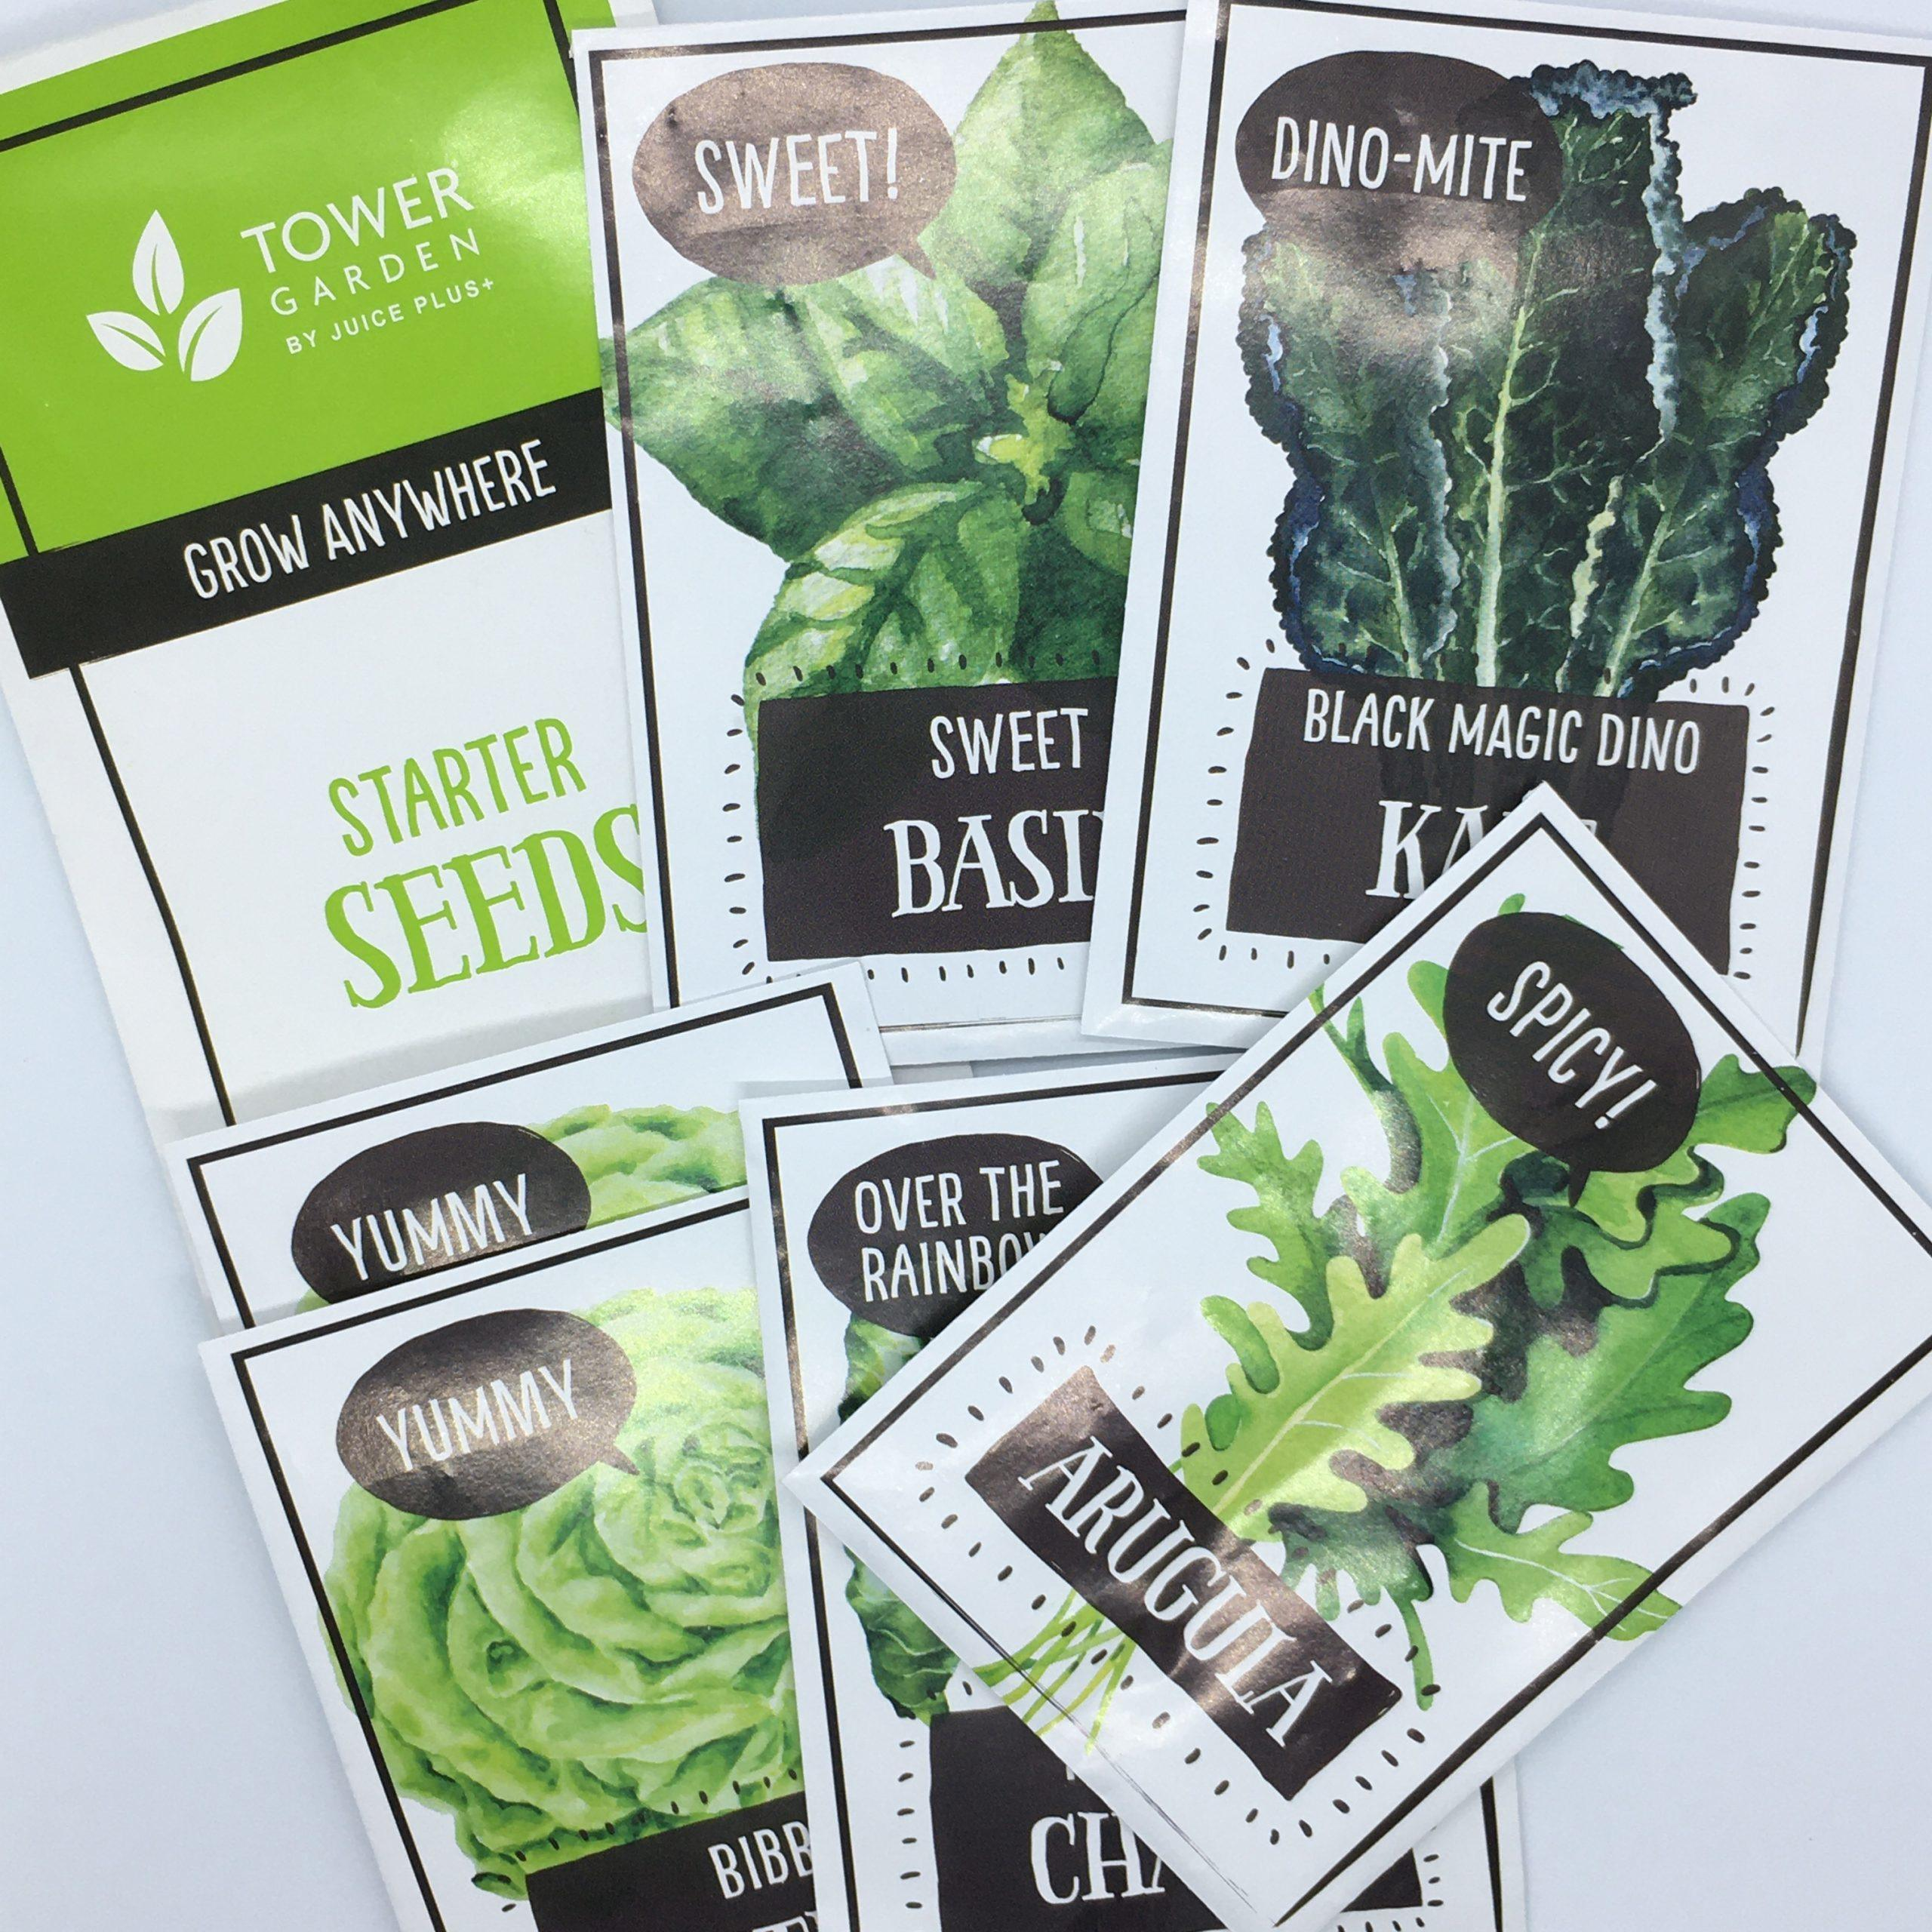 Tower Garden Starter Seeds